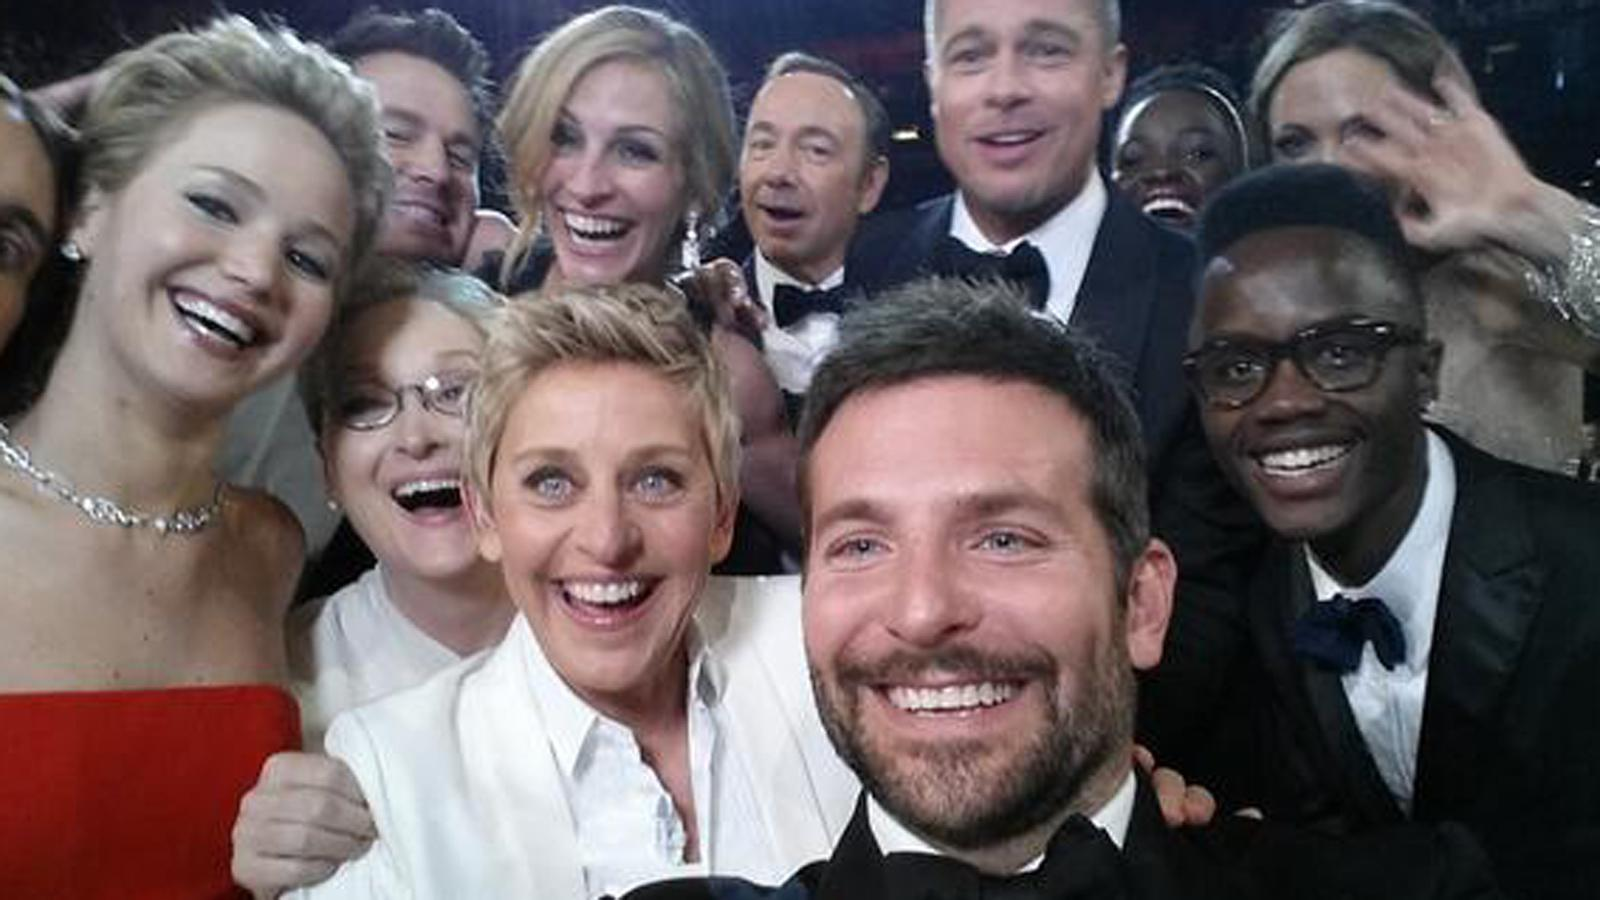 Courtesy of really.uktv.co.uk A group of A-list celebrities gather for a selfie. After this picture was taken at the 2014 Oscar's, Ellen's picture became the most retweeted image ever on twitter, almost breaking the internet.